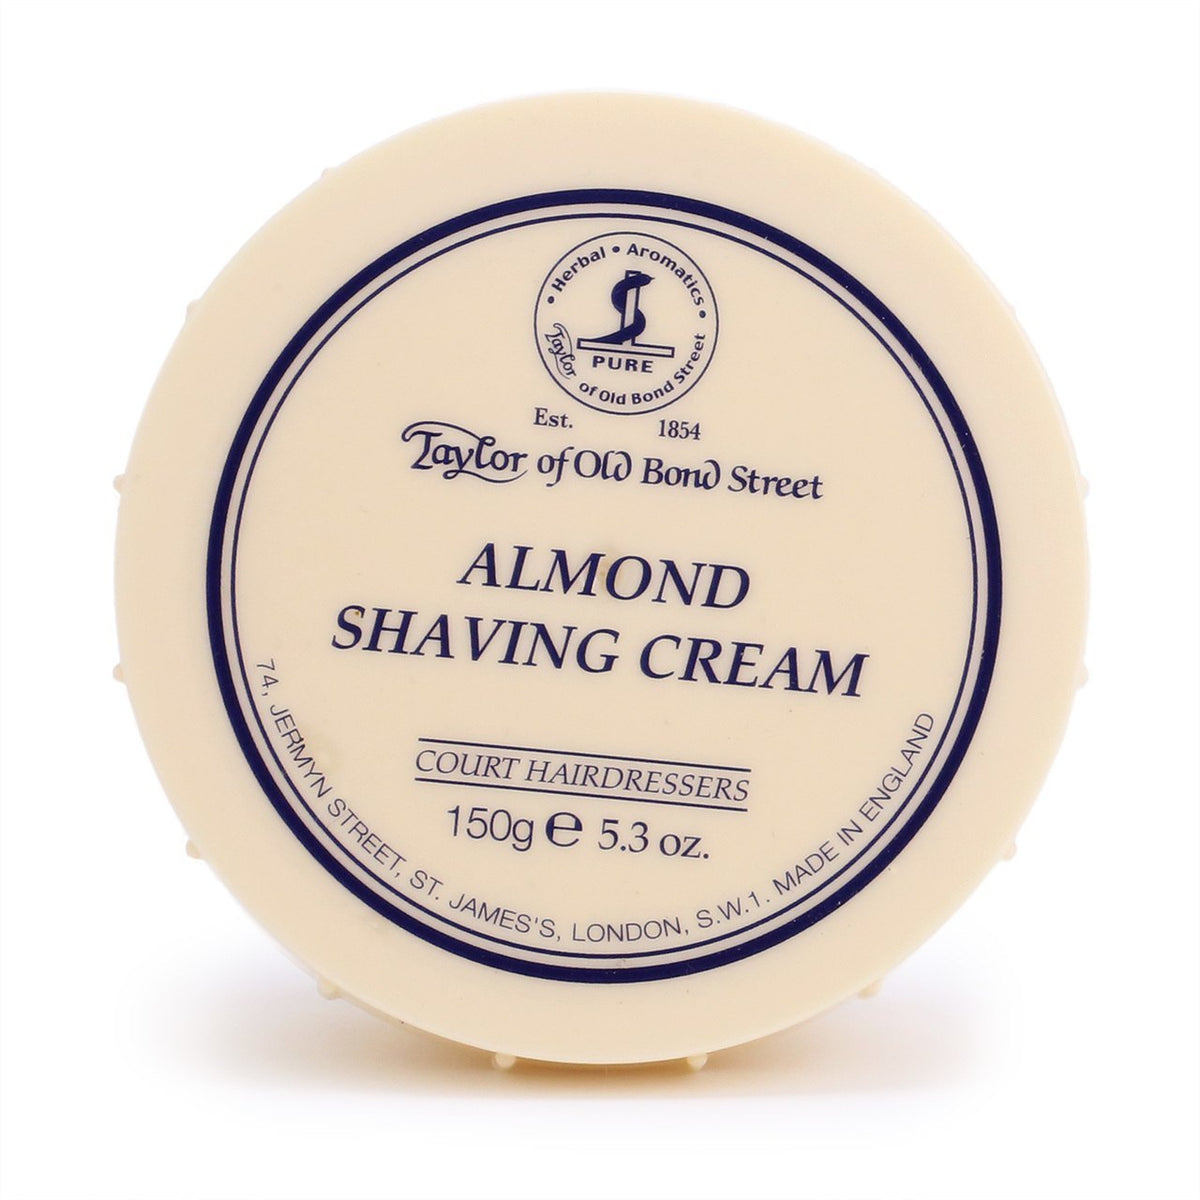 Taylor of Old Bond Street Shaving Cream Bowl 150 g - Almond